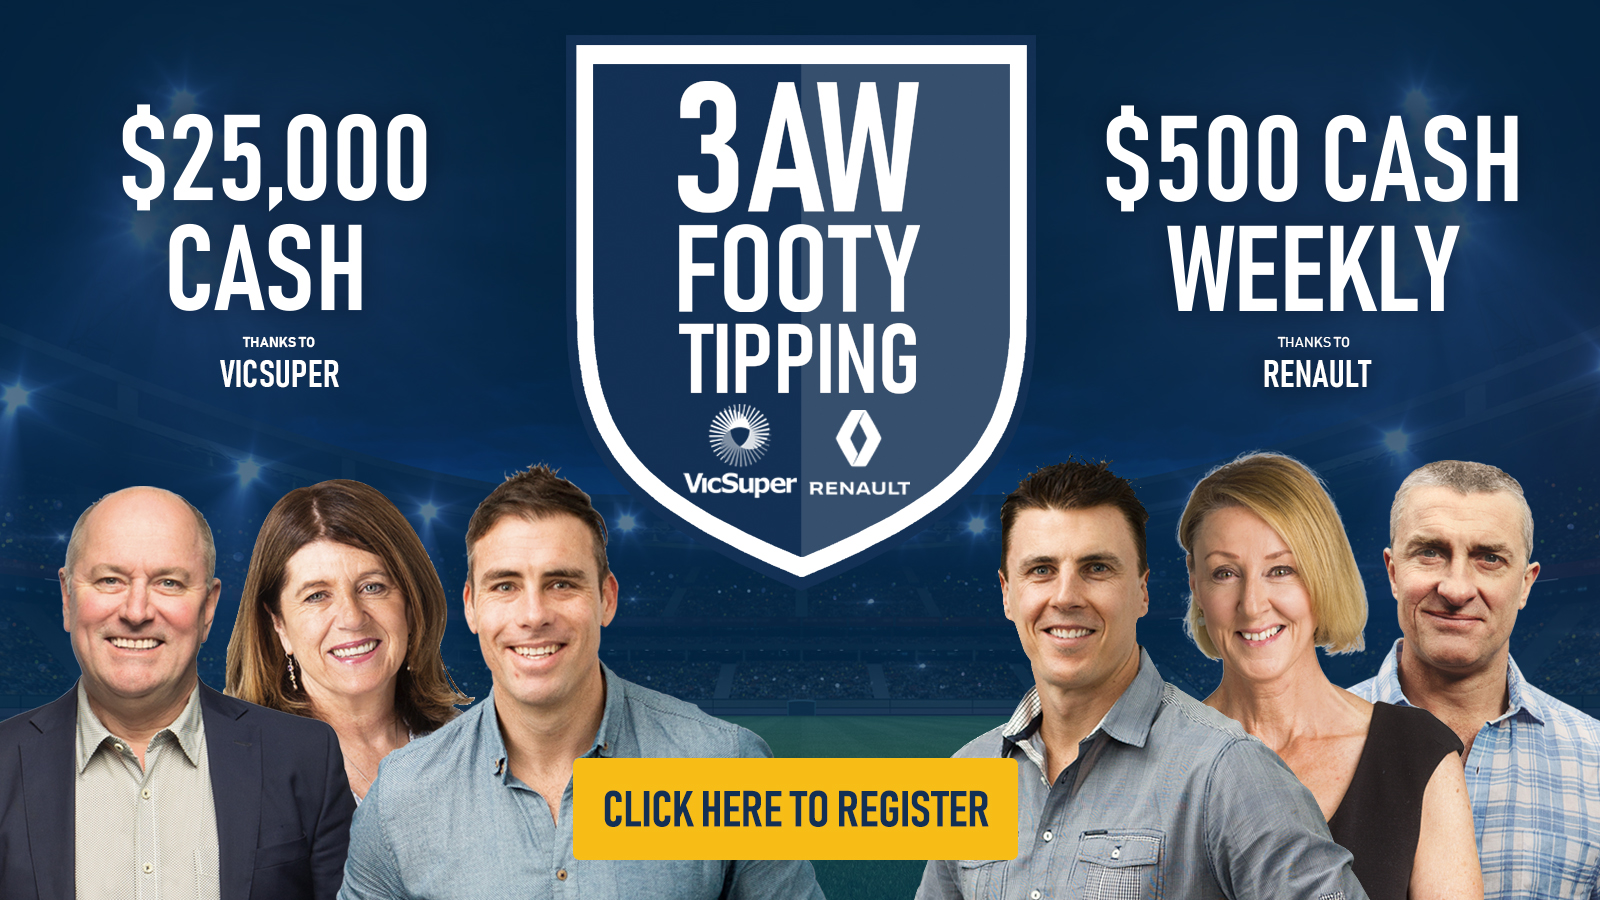 3AW Footy Tipping 2020: Enter here!